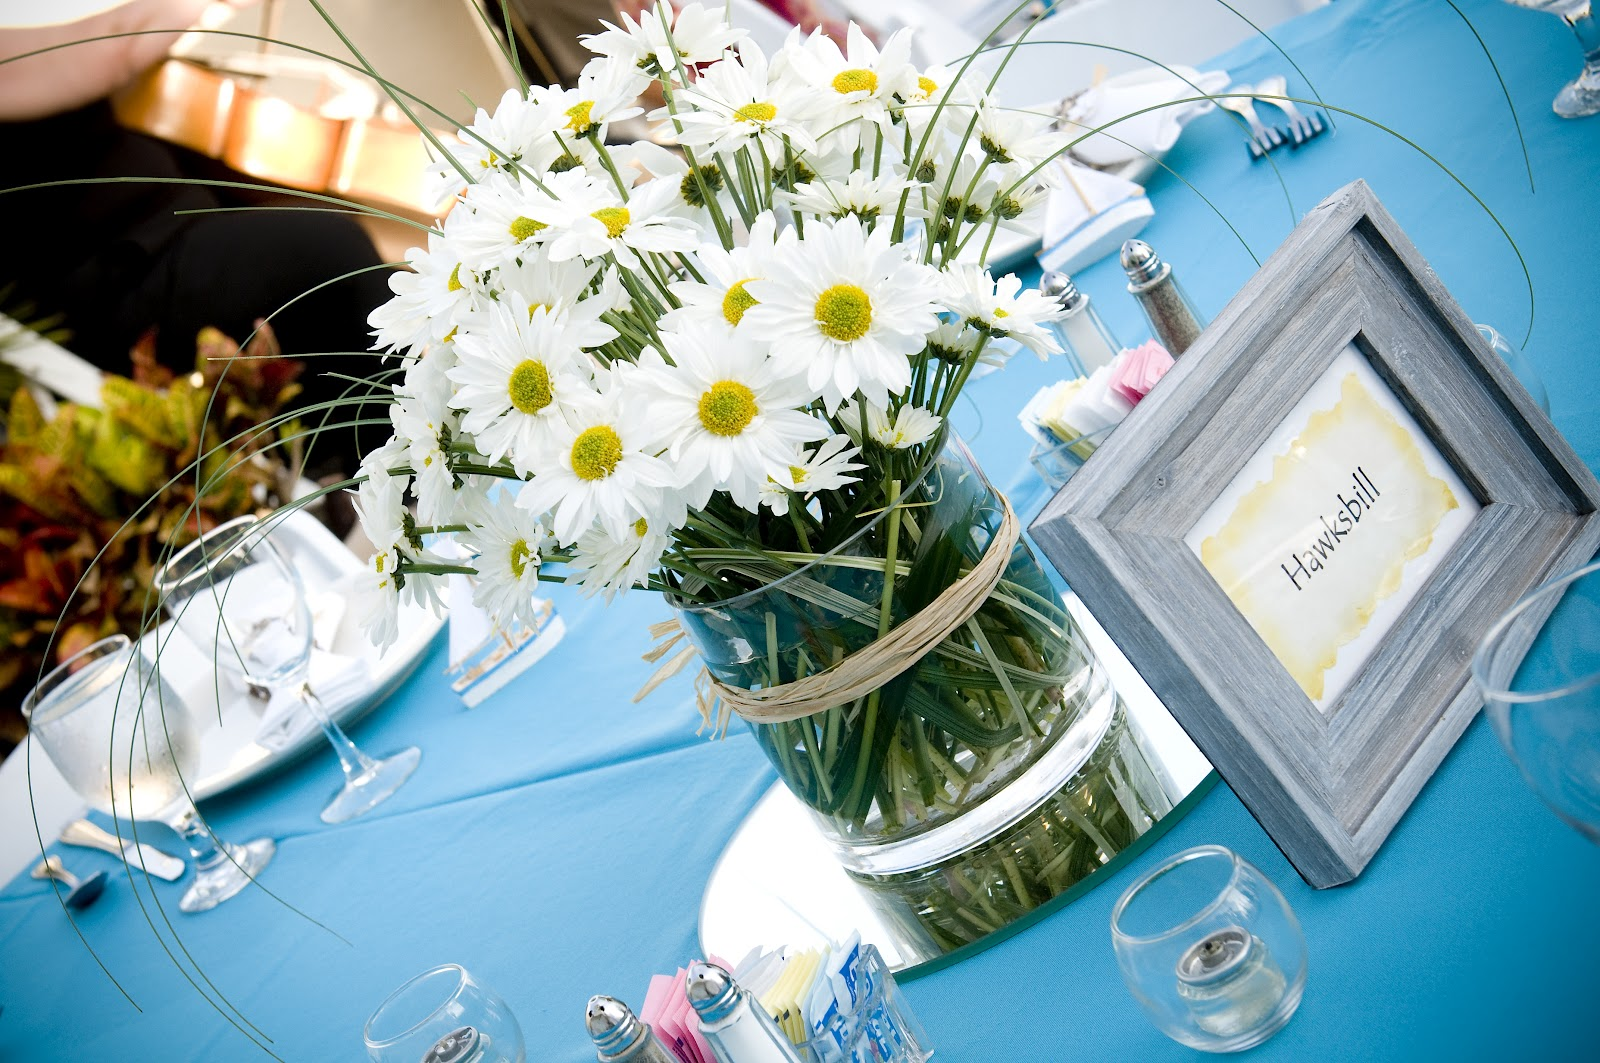 Susan snyder beach wedding flowers beach wedding daisy centerpiece in glass vase with rafia reception centerpieces izmirmasajfo